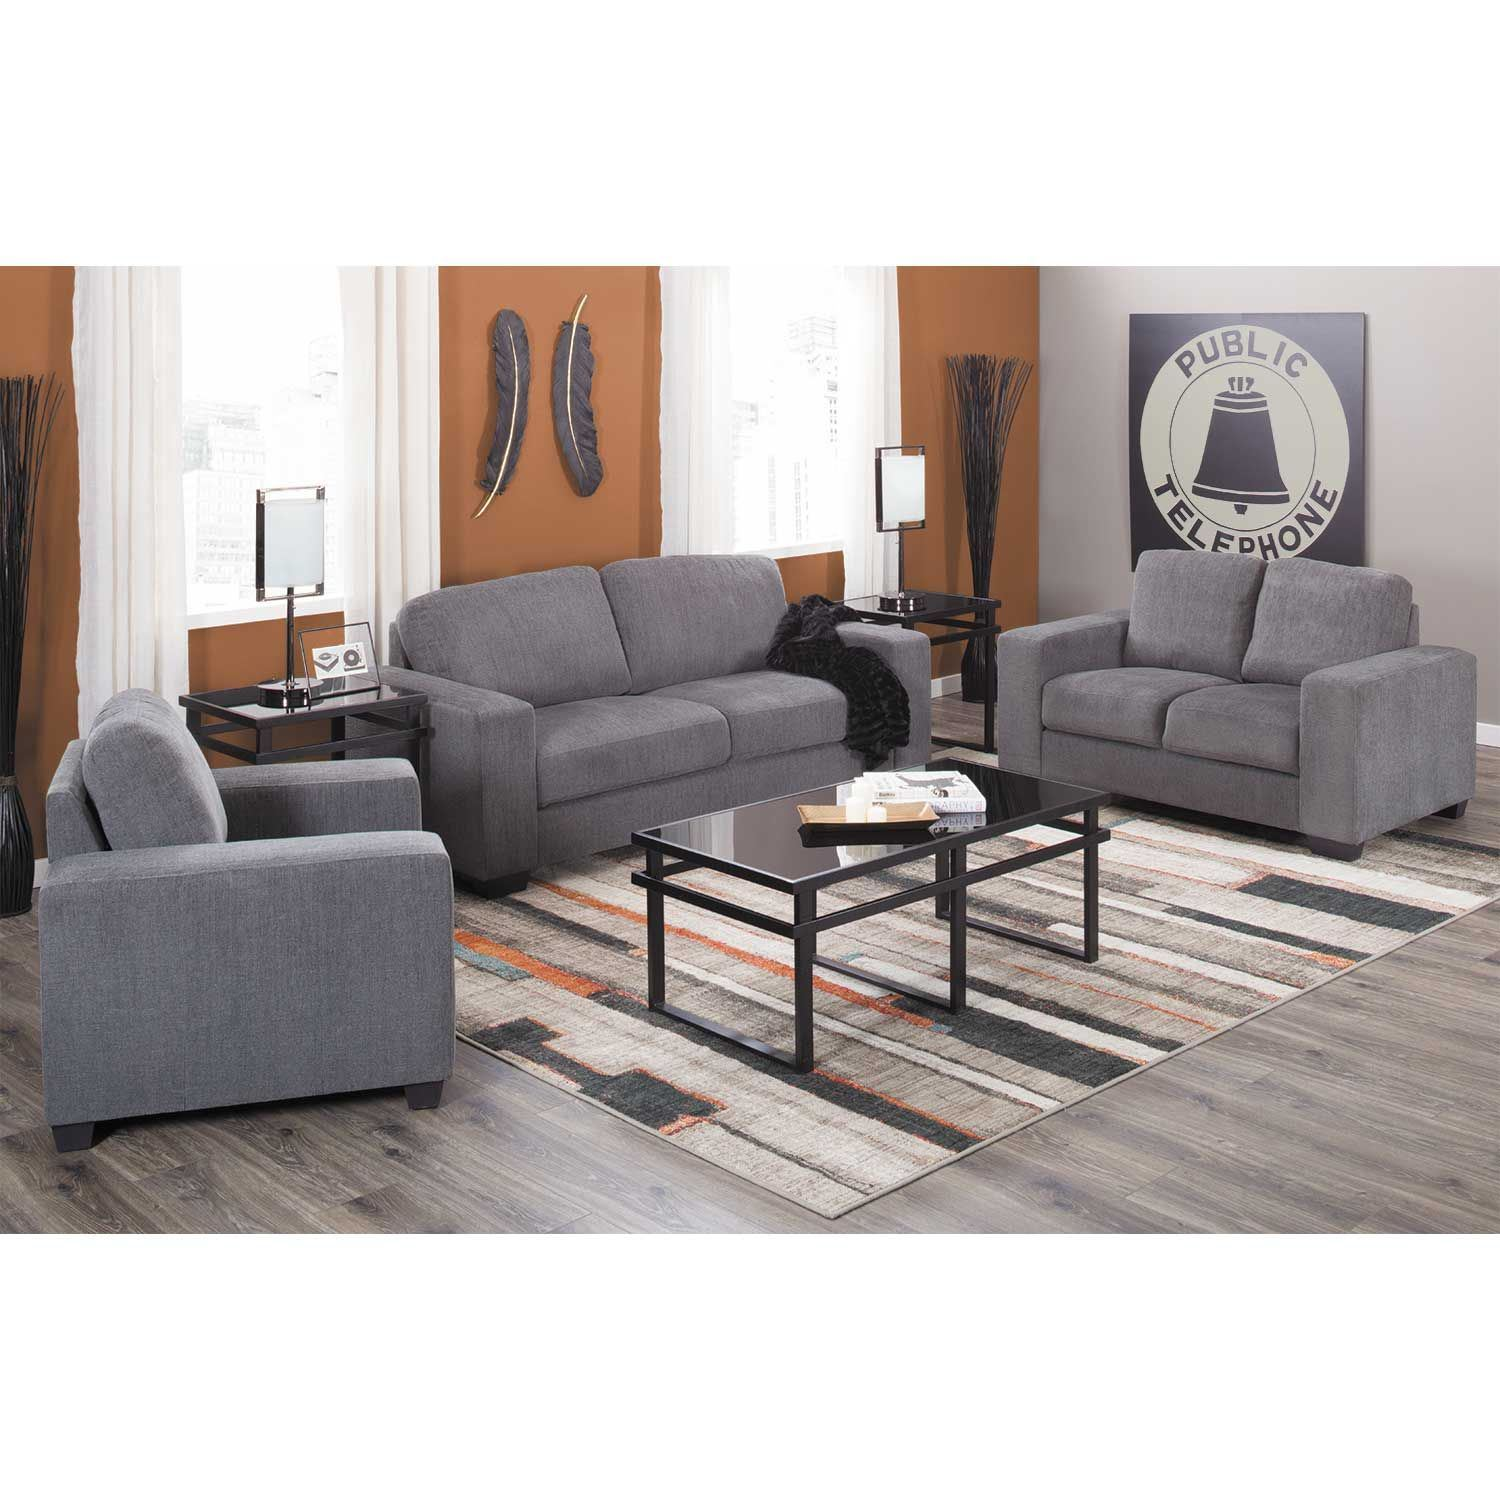 Charleston Dark Gray Sofa U2348m 60bcgxgrx Dark Gray